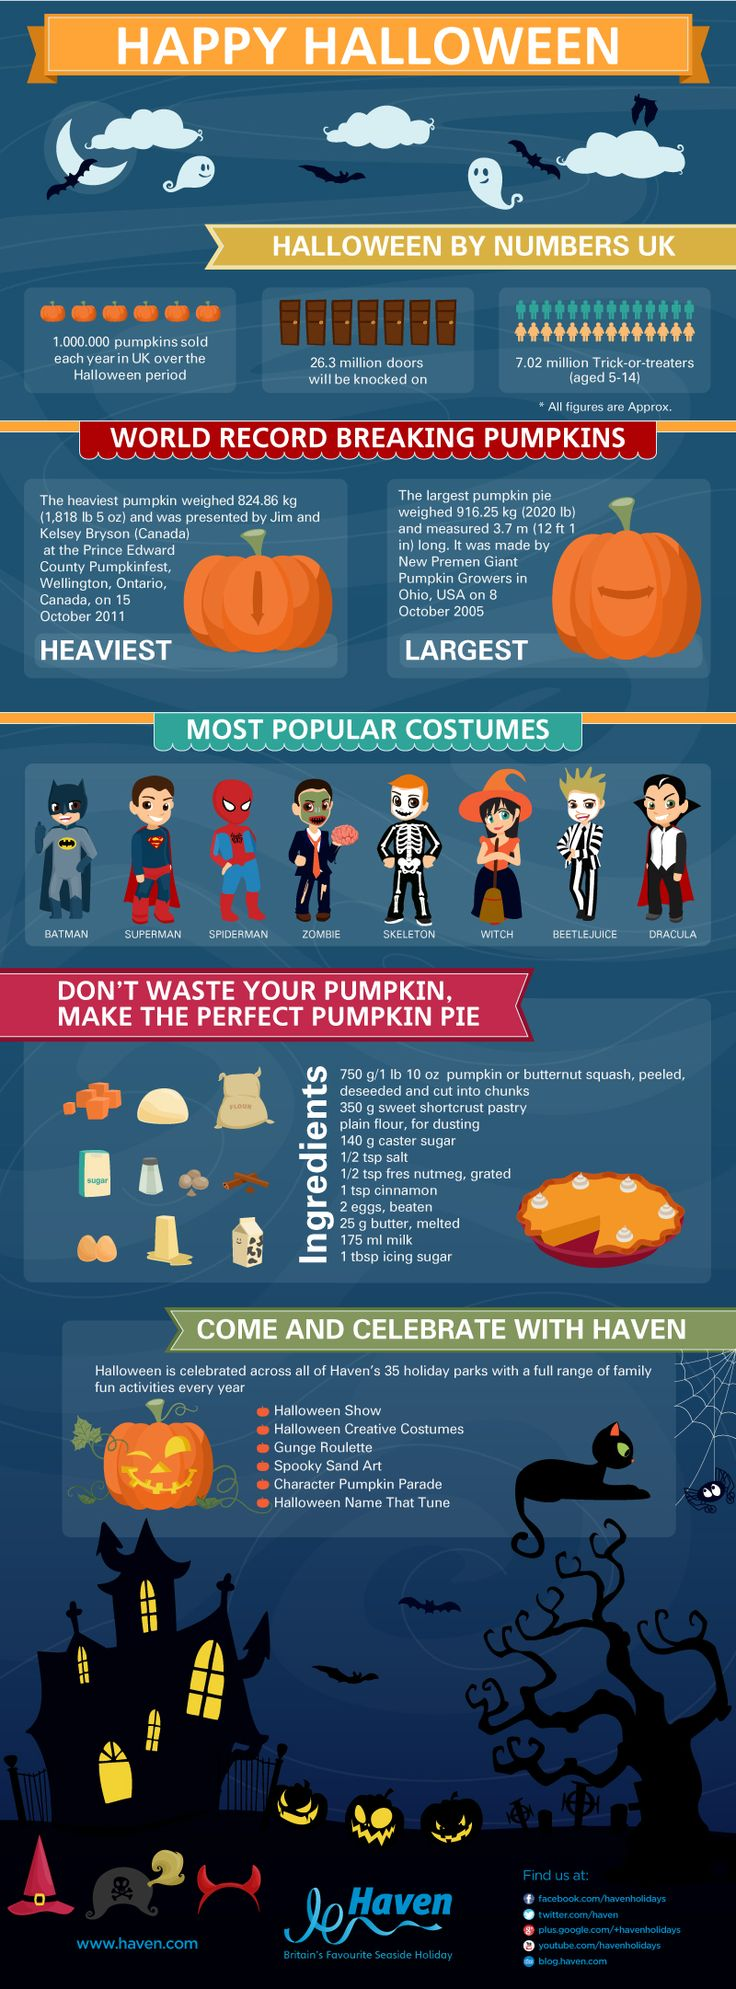 fun guide to halloween 2013 - Where Does The Halloween Celebration Come From